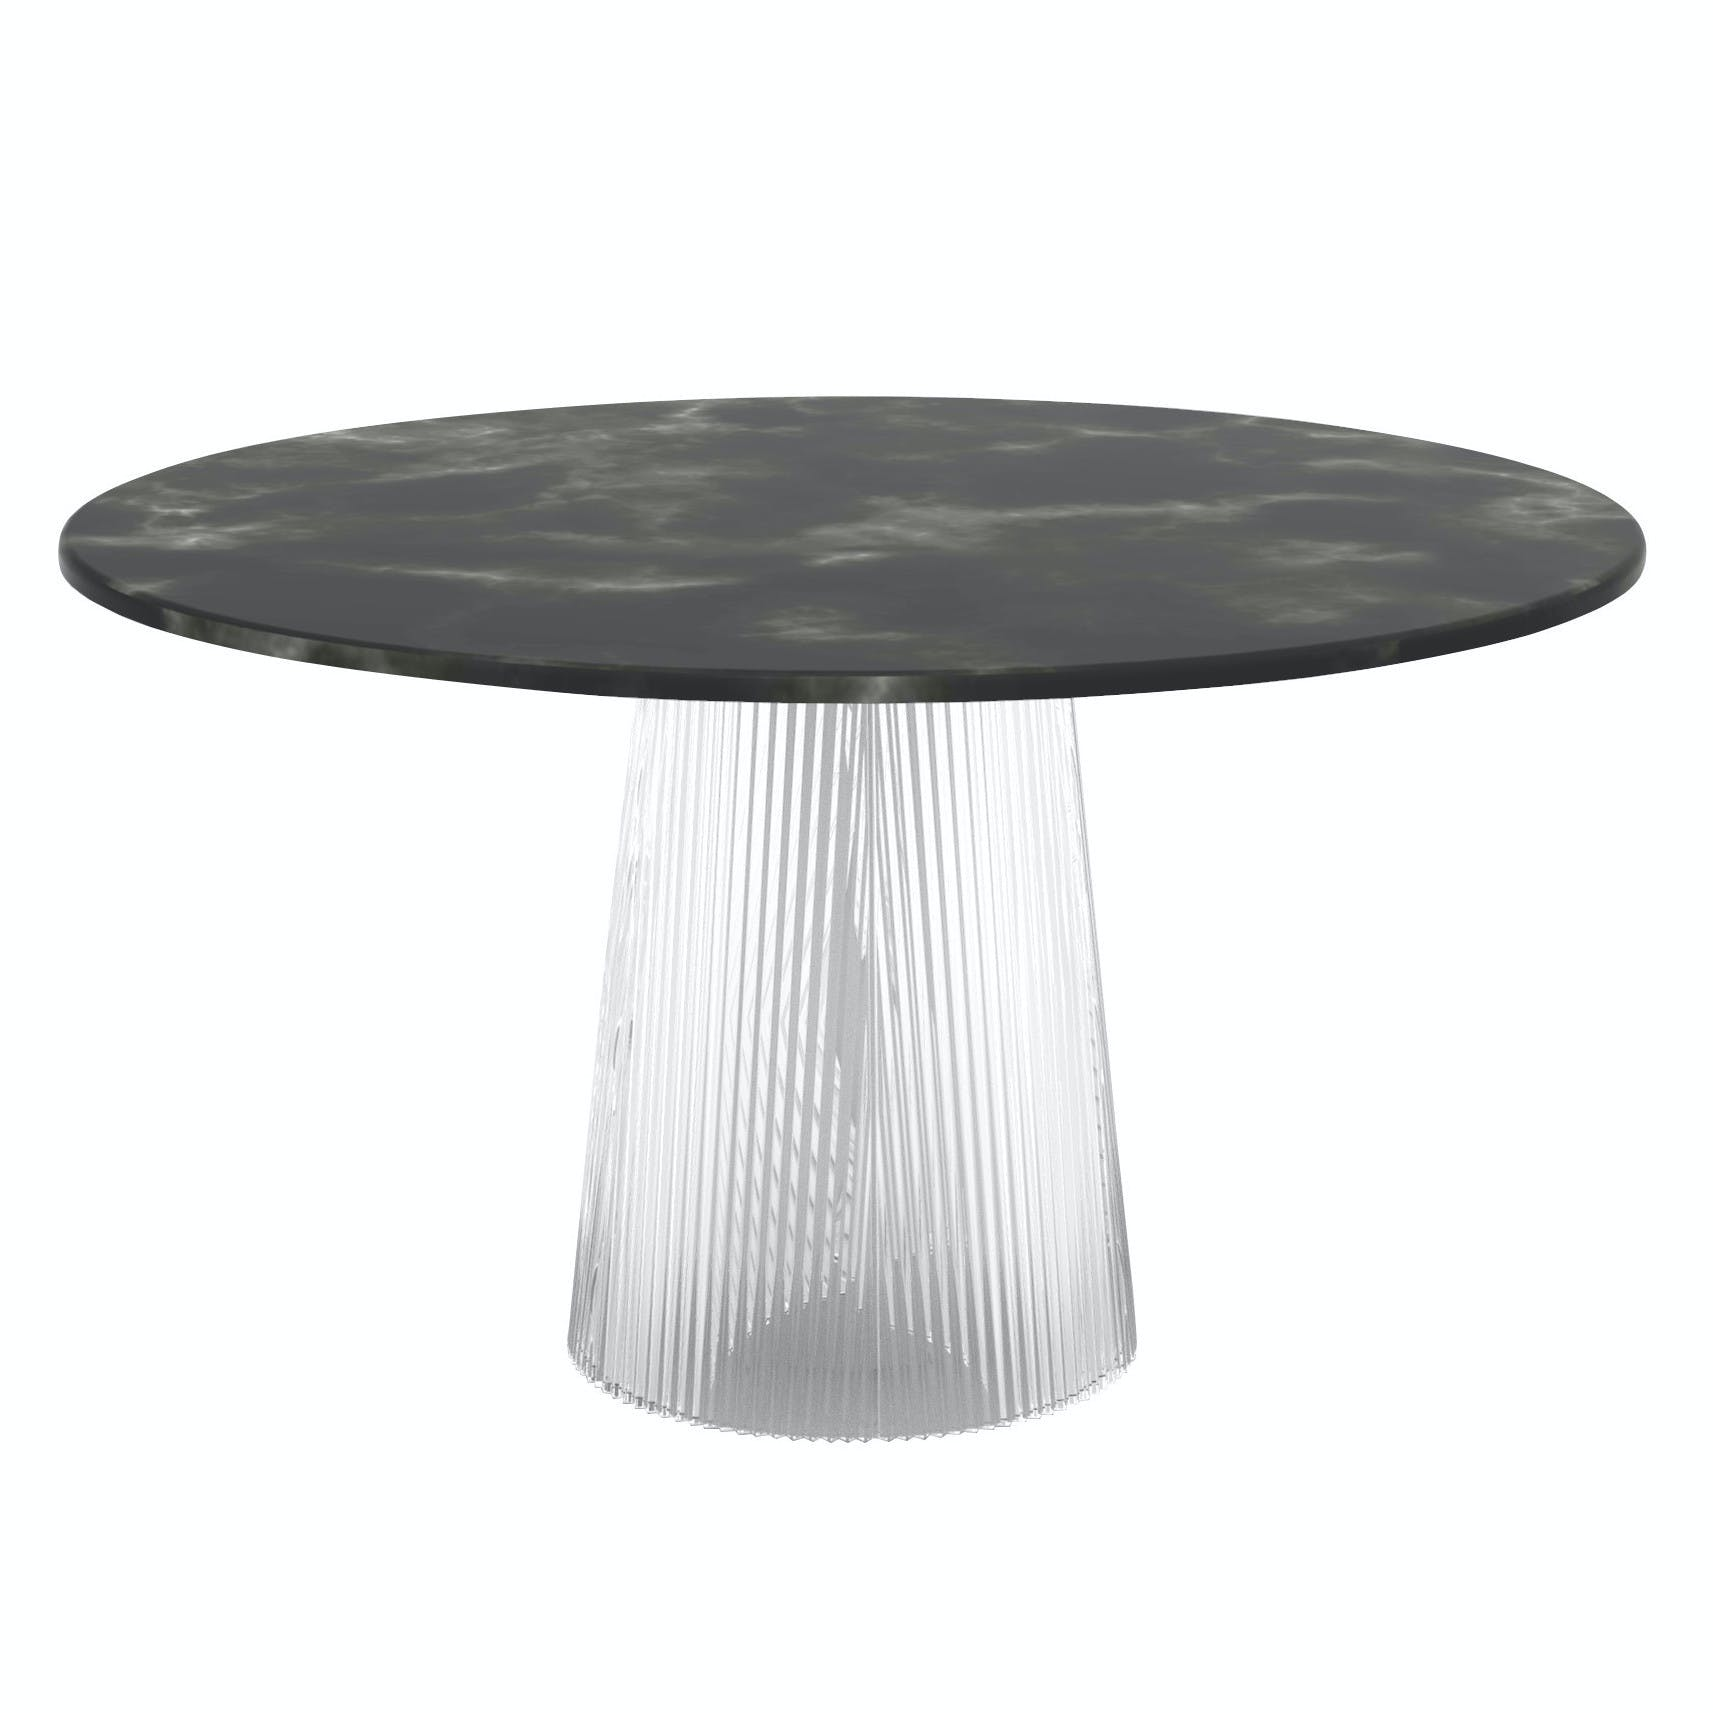 Pulpo-bent-dining-table-black-top-haute-living_190513_203838